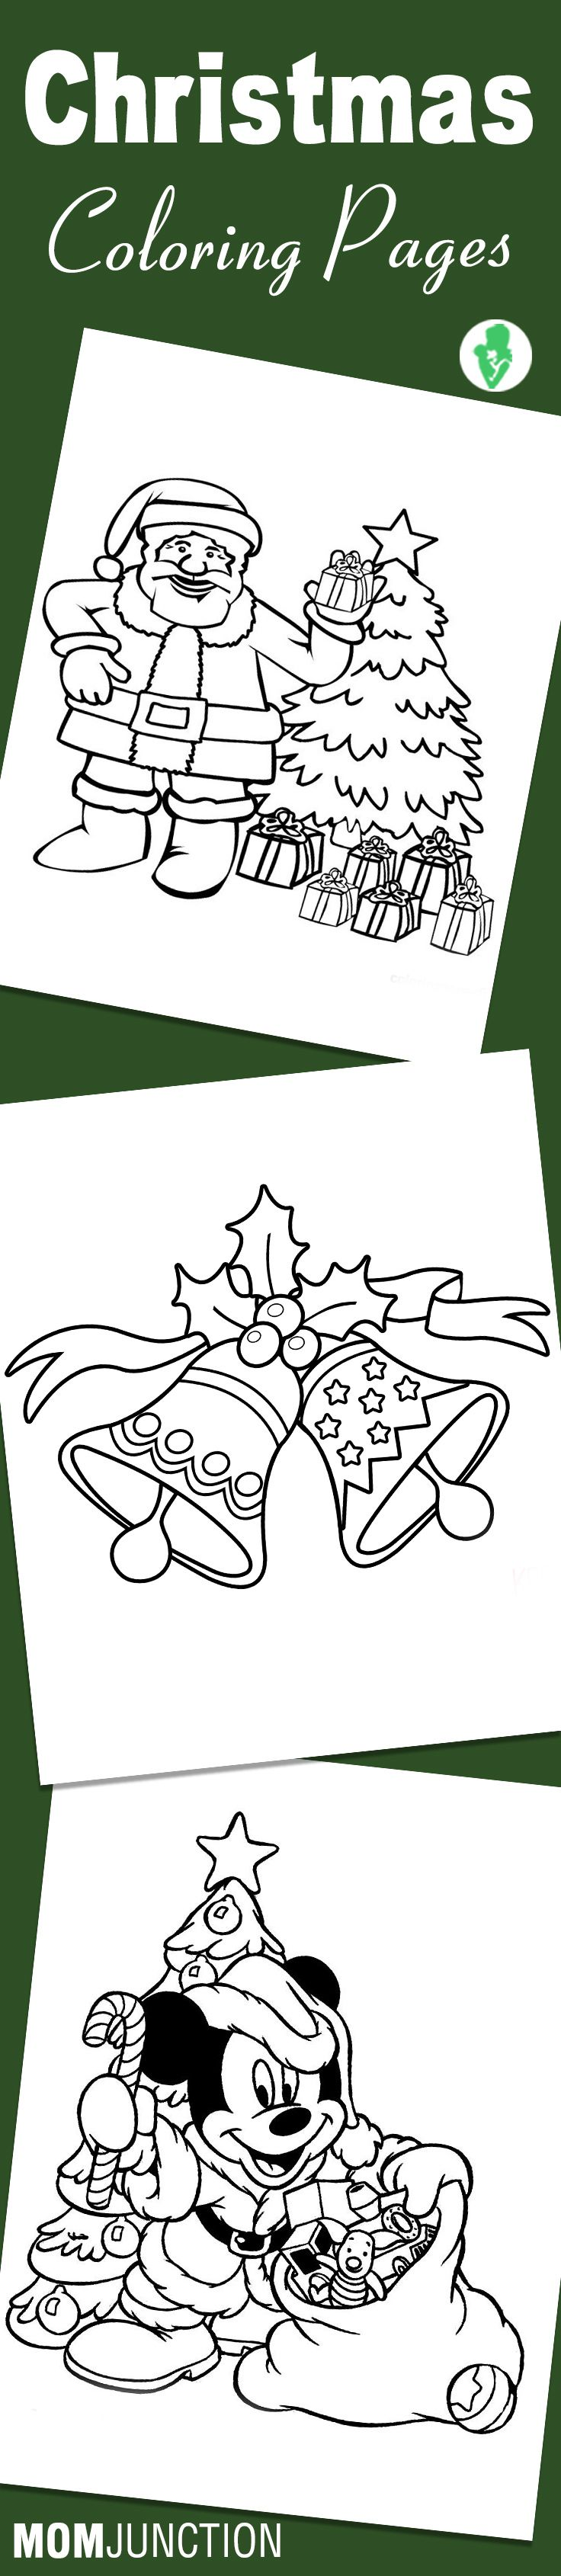 25 Amazing Christmas Coloring Pages Your Little Ones Will Love To Color